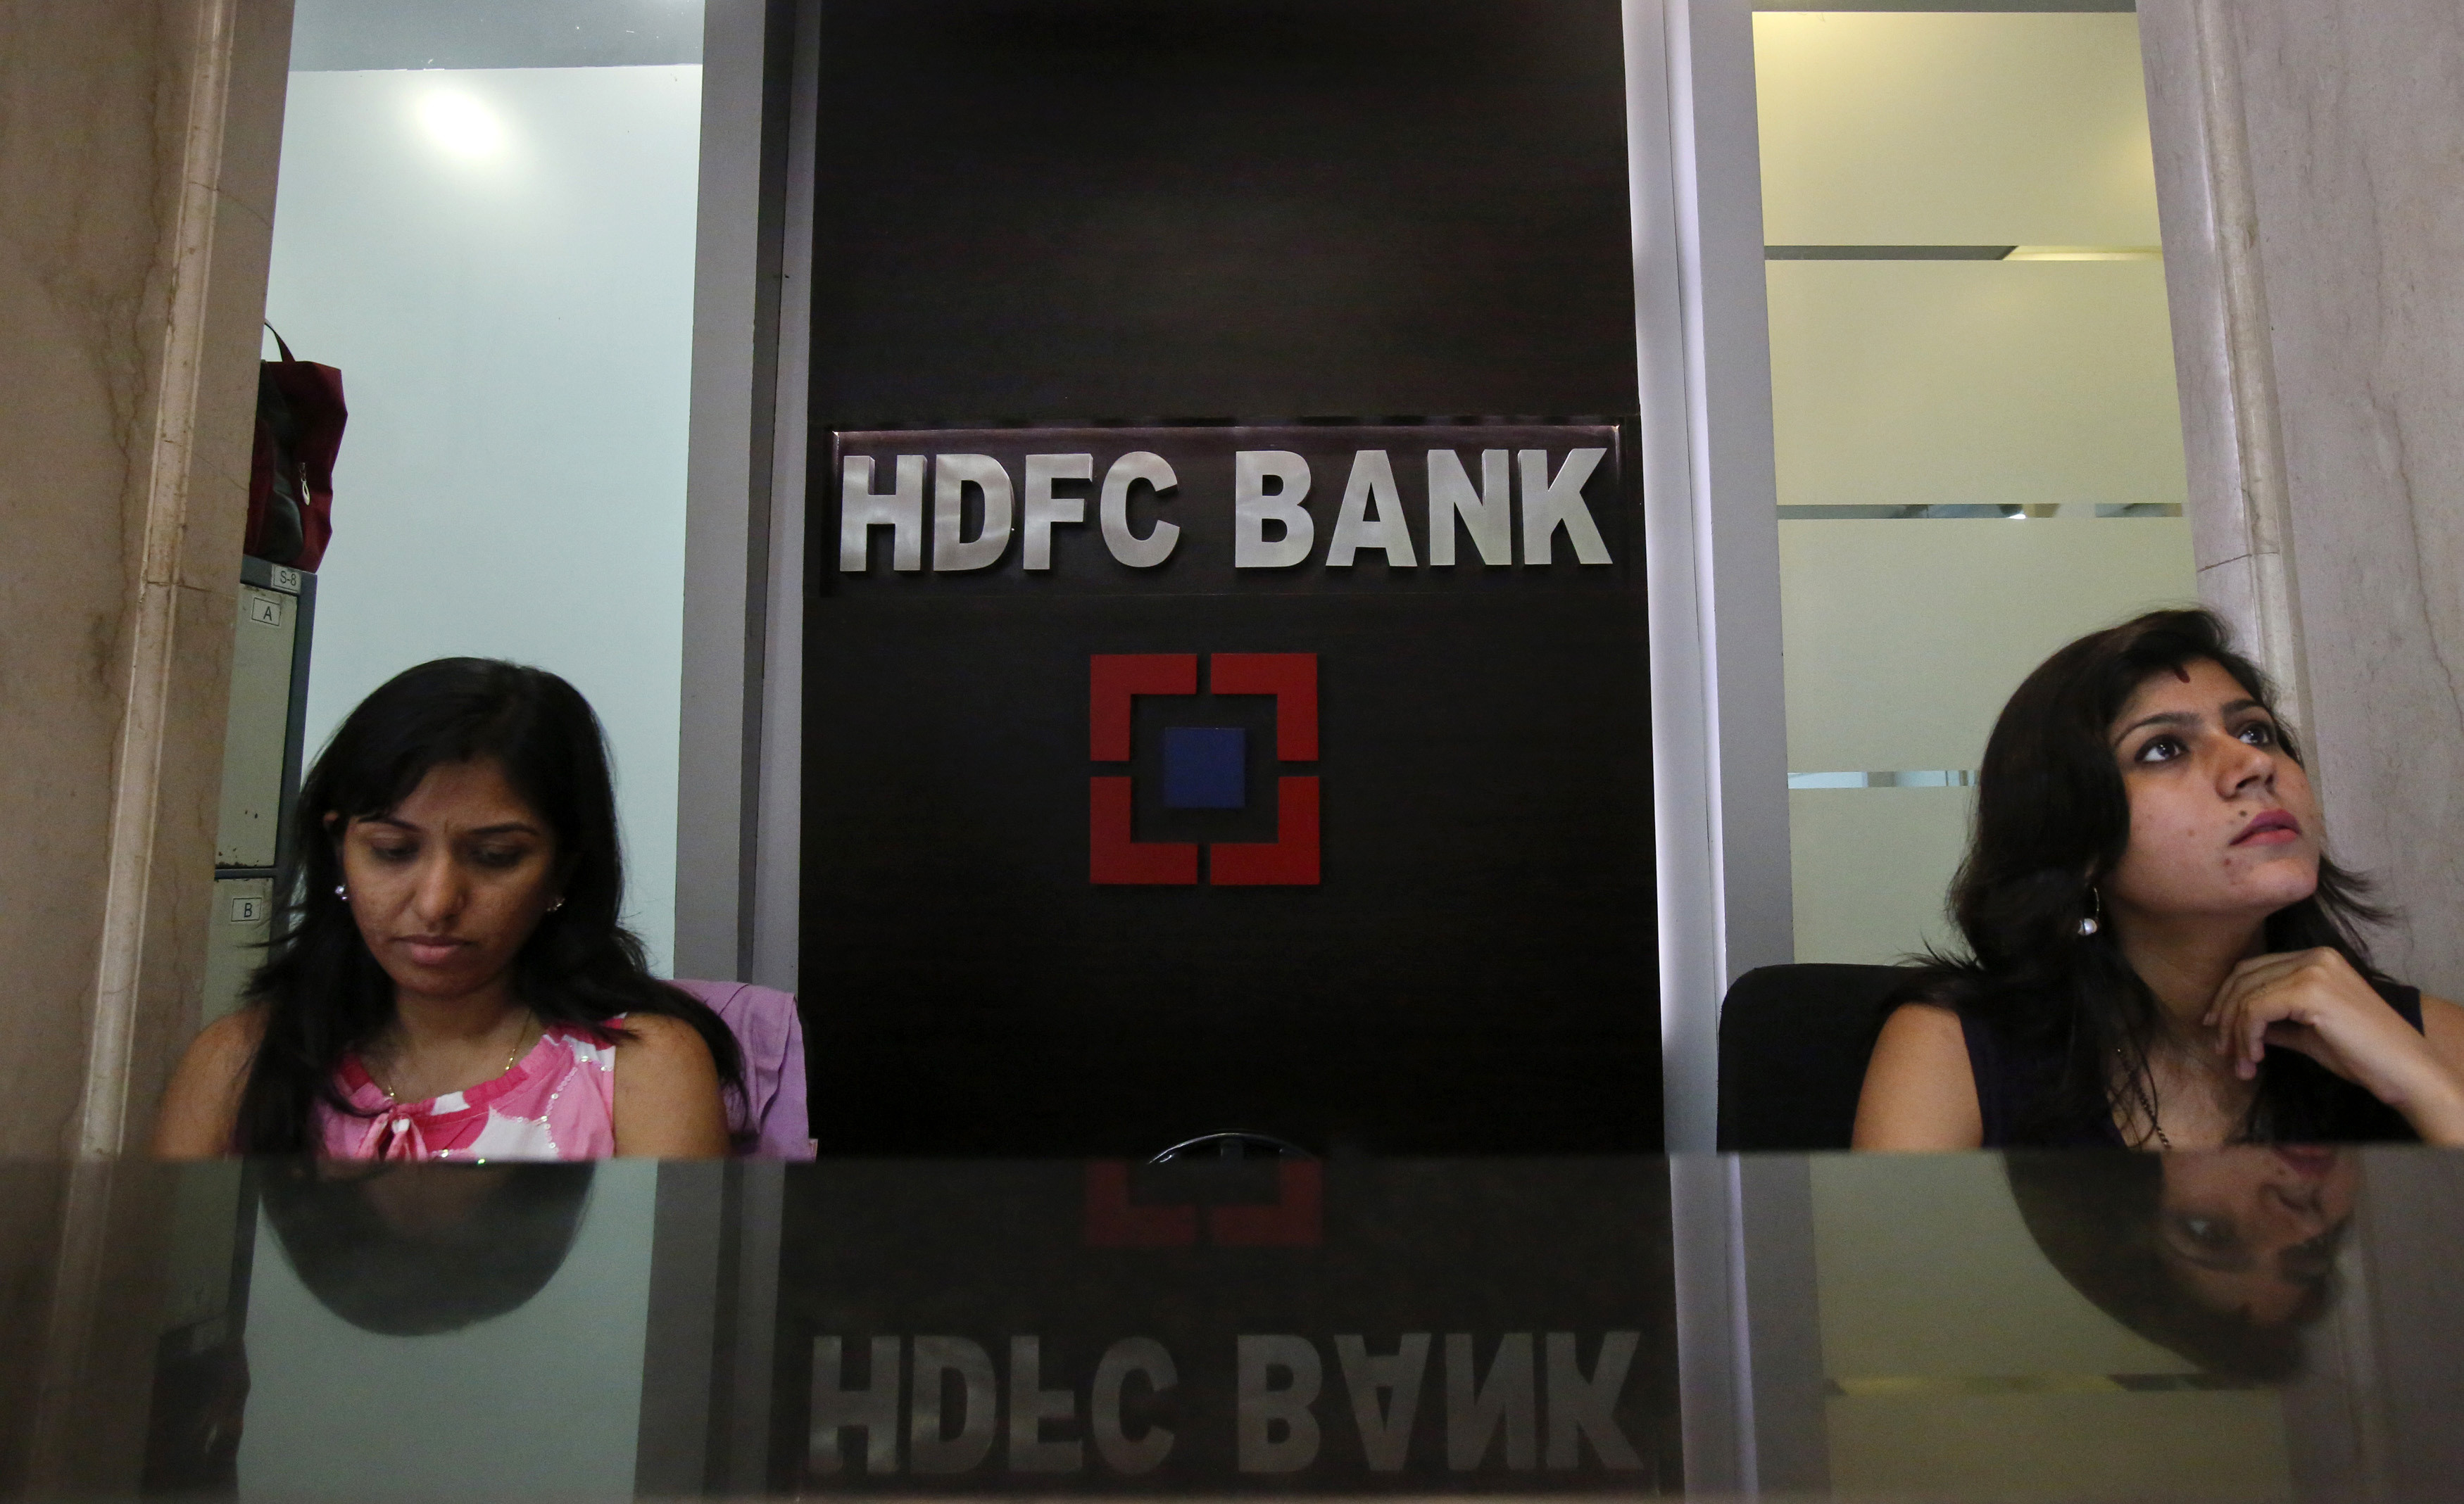 Personal bankers wait for customers at the reception of a HDFC Bank branch in Mumbai November 17, 2012.